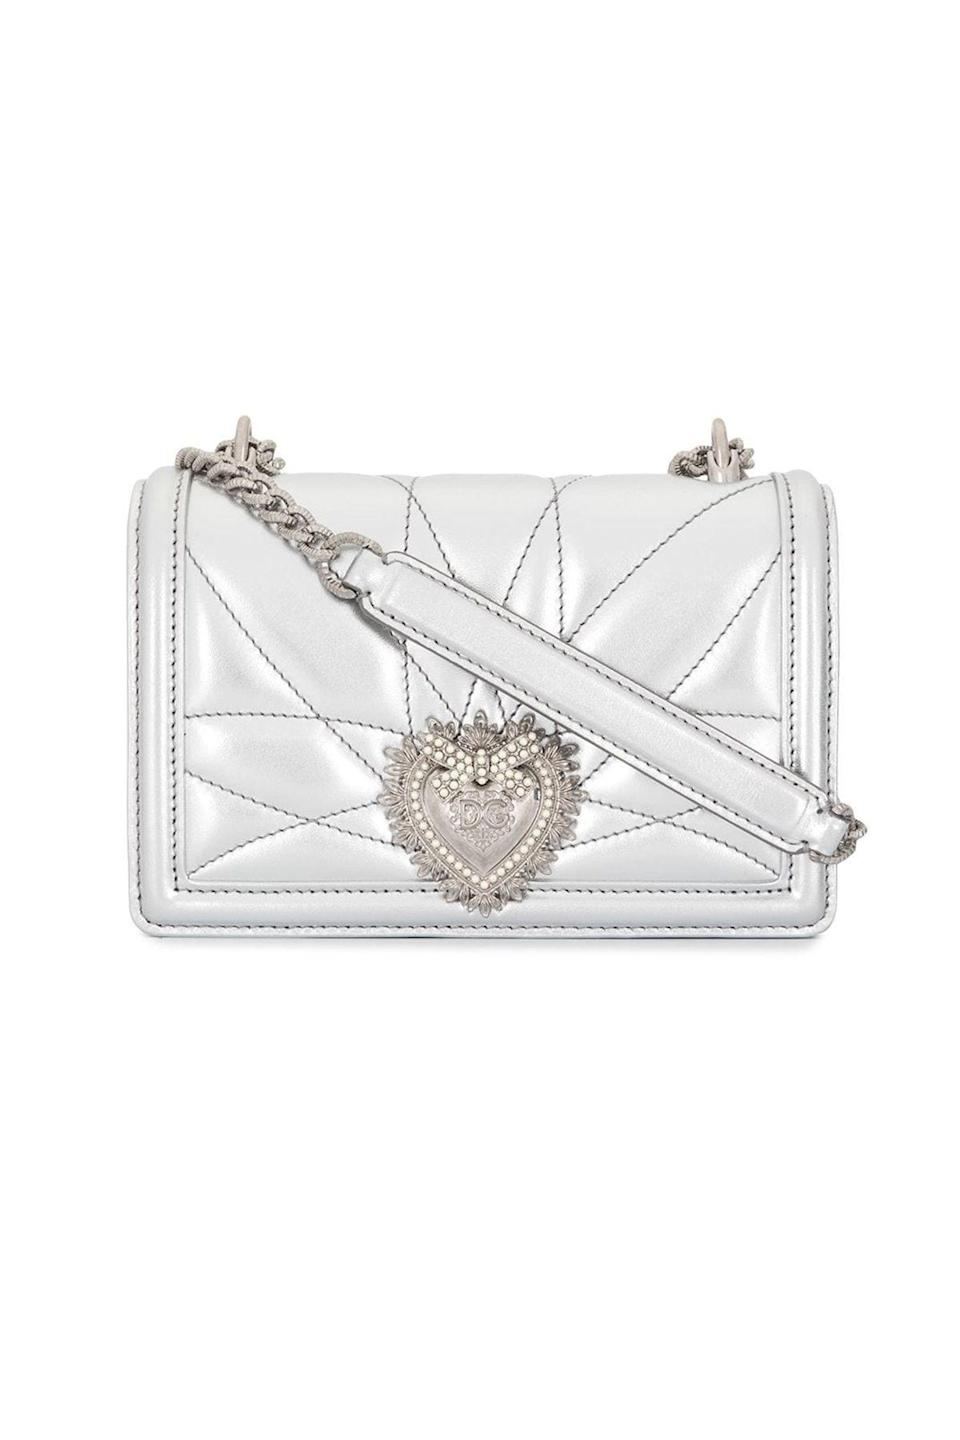 """<p><strong>Dolce & Gabbana</strong></p><p>farfetch.com</p><p><strong>$1945.00</strong></p><p><a href=""""https://go.redirectingat.com?id=74968X1596630&url=https%3A%2F%2Fwww.farfetch.com%2Fshopping%2Fwomen%2Fdolce-gabbana-devotion-metallic-shoulder-bag-item-15621631.aspx&sref=https%3A%2F%2Fwww.townandcountrymag.com%2Fstyle%2Ffashion-trends%2Fg36544376%2Fbest-metallic-accessories%2F"""" rel=""""nofollow noopener"""" target=""""_blank"""" data-ylk=""""slk:Shop Now"""" class=""""link rapid-noclick-resp"""">Shop Now</a></p><p>Why wear your heart on your sleeve when you can wear it on your Dolce & Gabbana purse? This is an instant closet staple. </p>"""